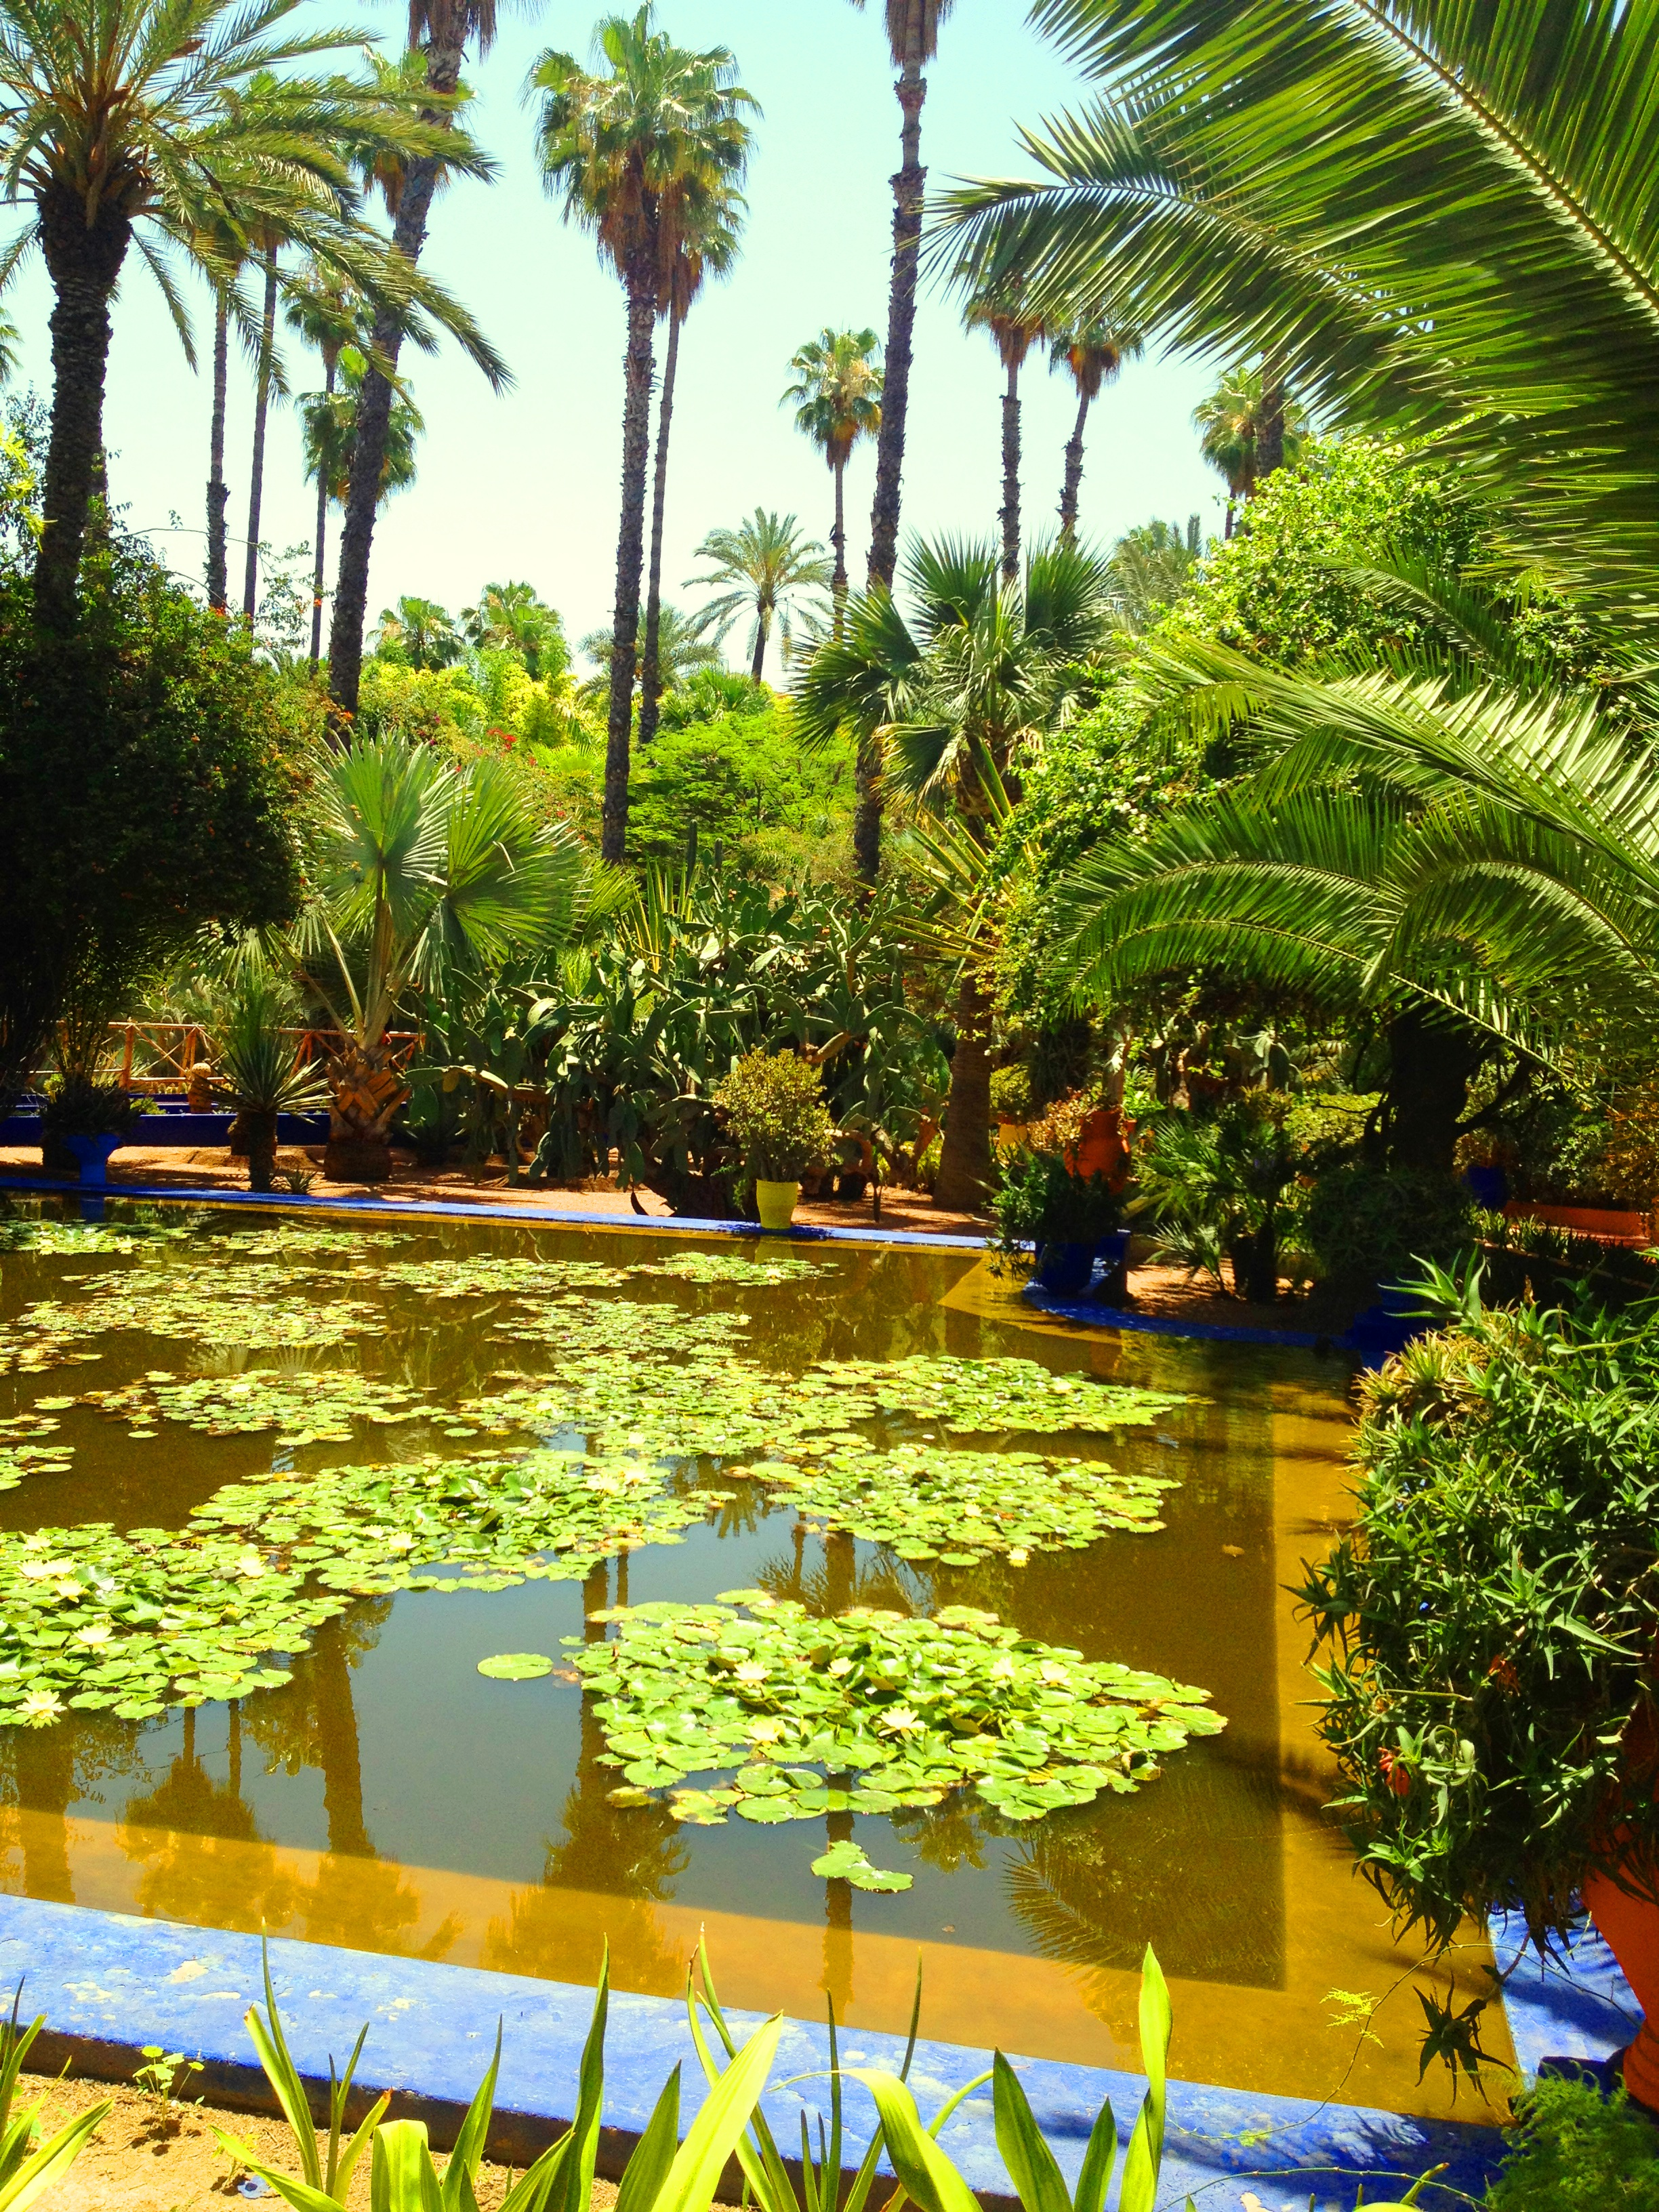 Inspired by ysl and le jardin majorelle ayesha amato for Jardin majorelle